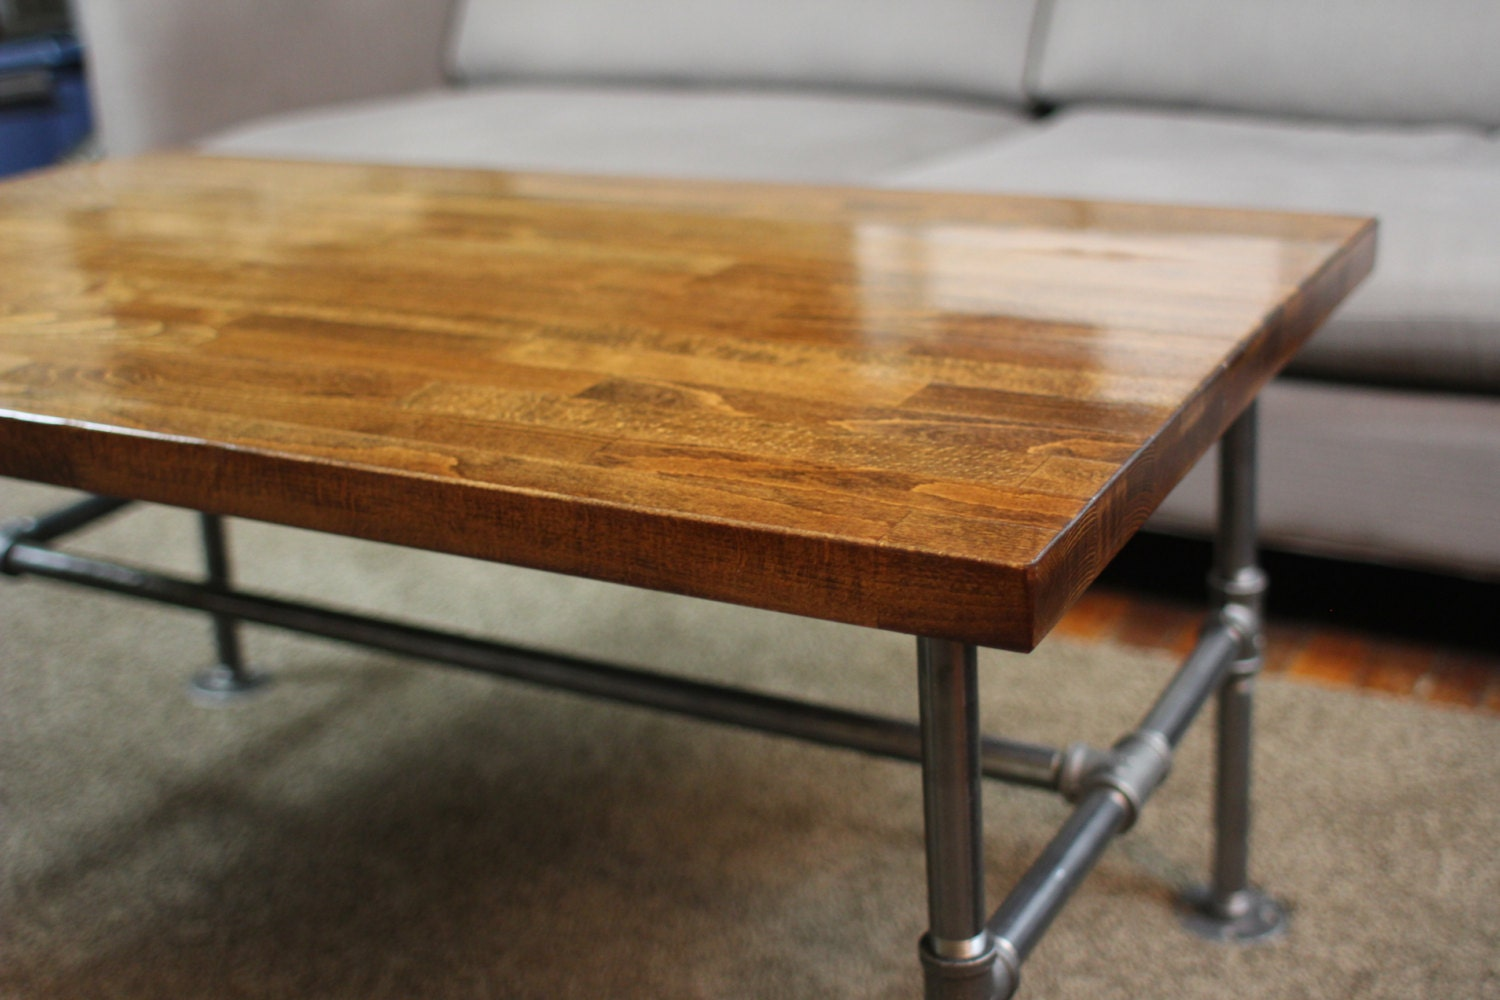 Made to Order Handmade High Gloss Butcher Block Coffee Table